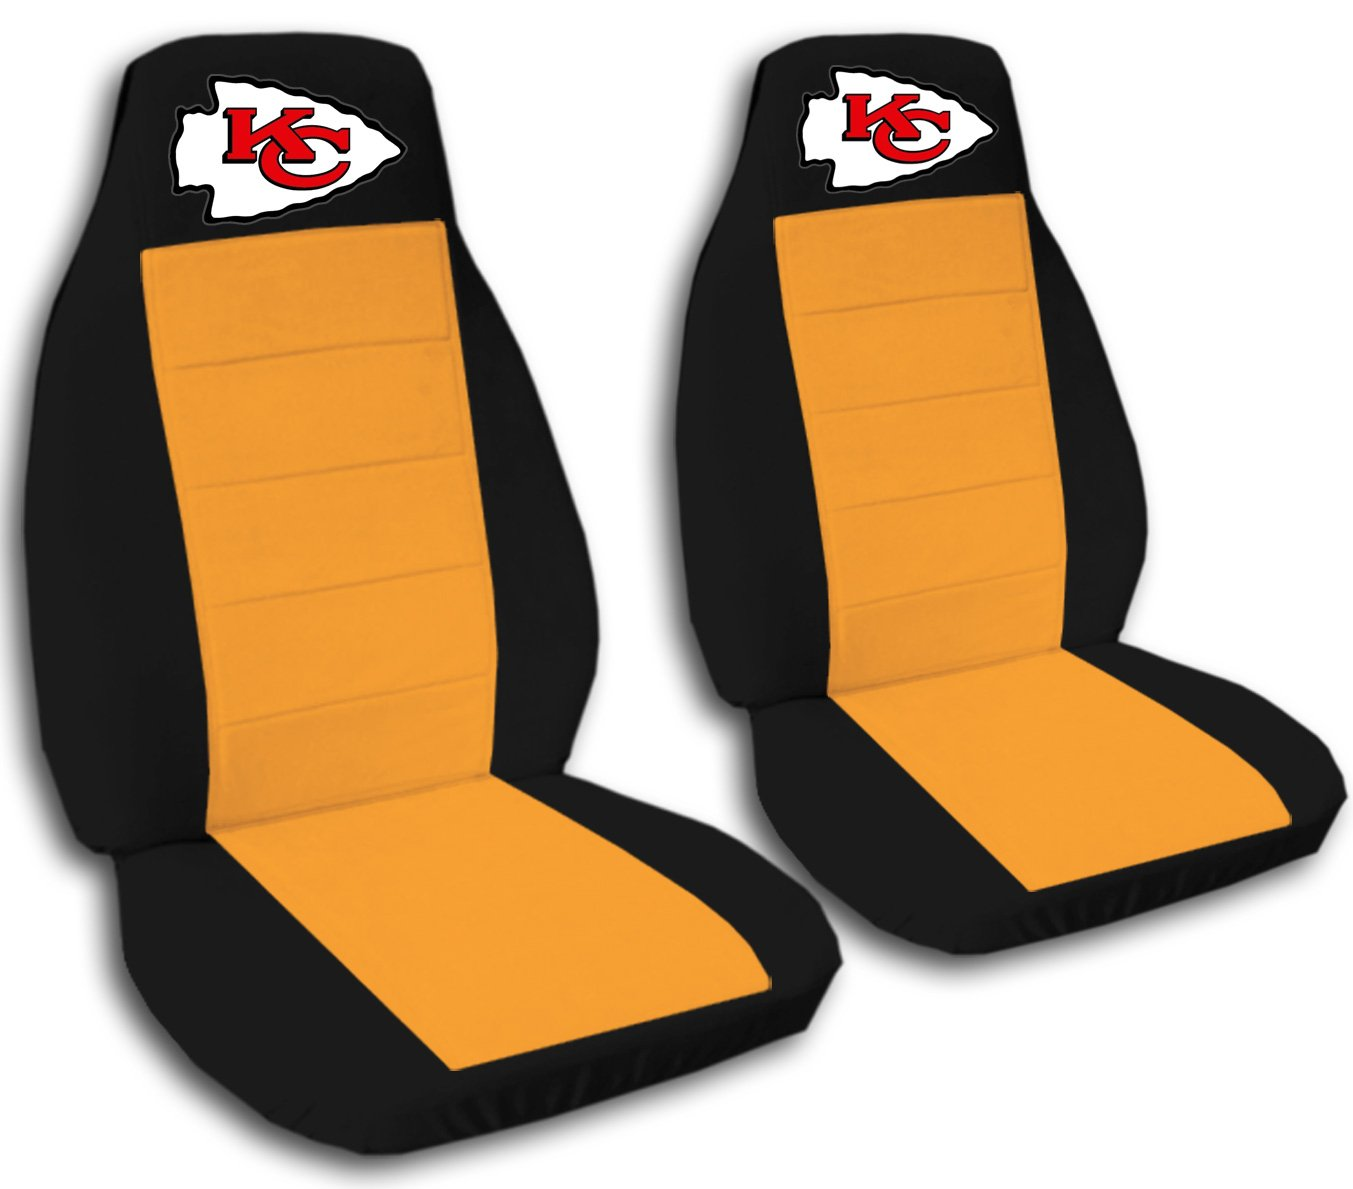 2 Black and Orange Kansas City seat covers for a 2007 to 2012 Chevrolet Silverado. Side airbag friendly.